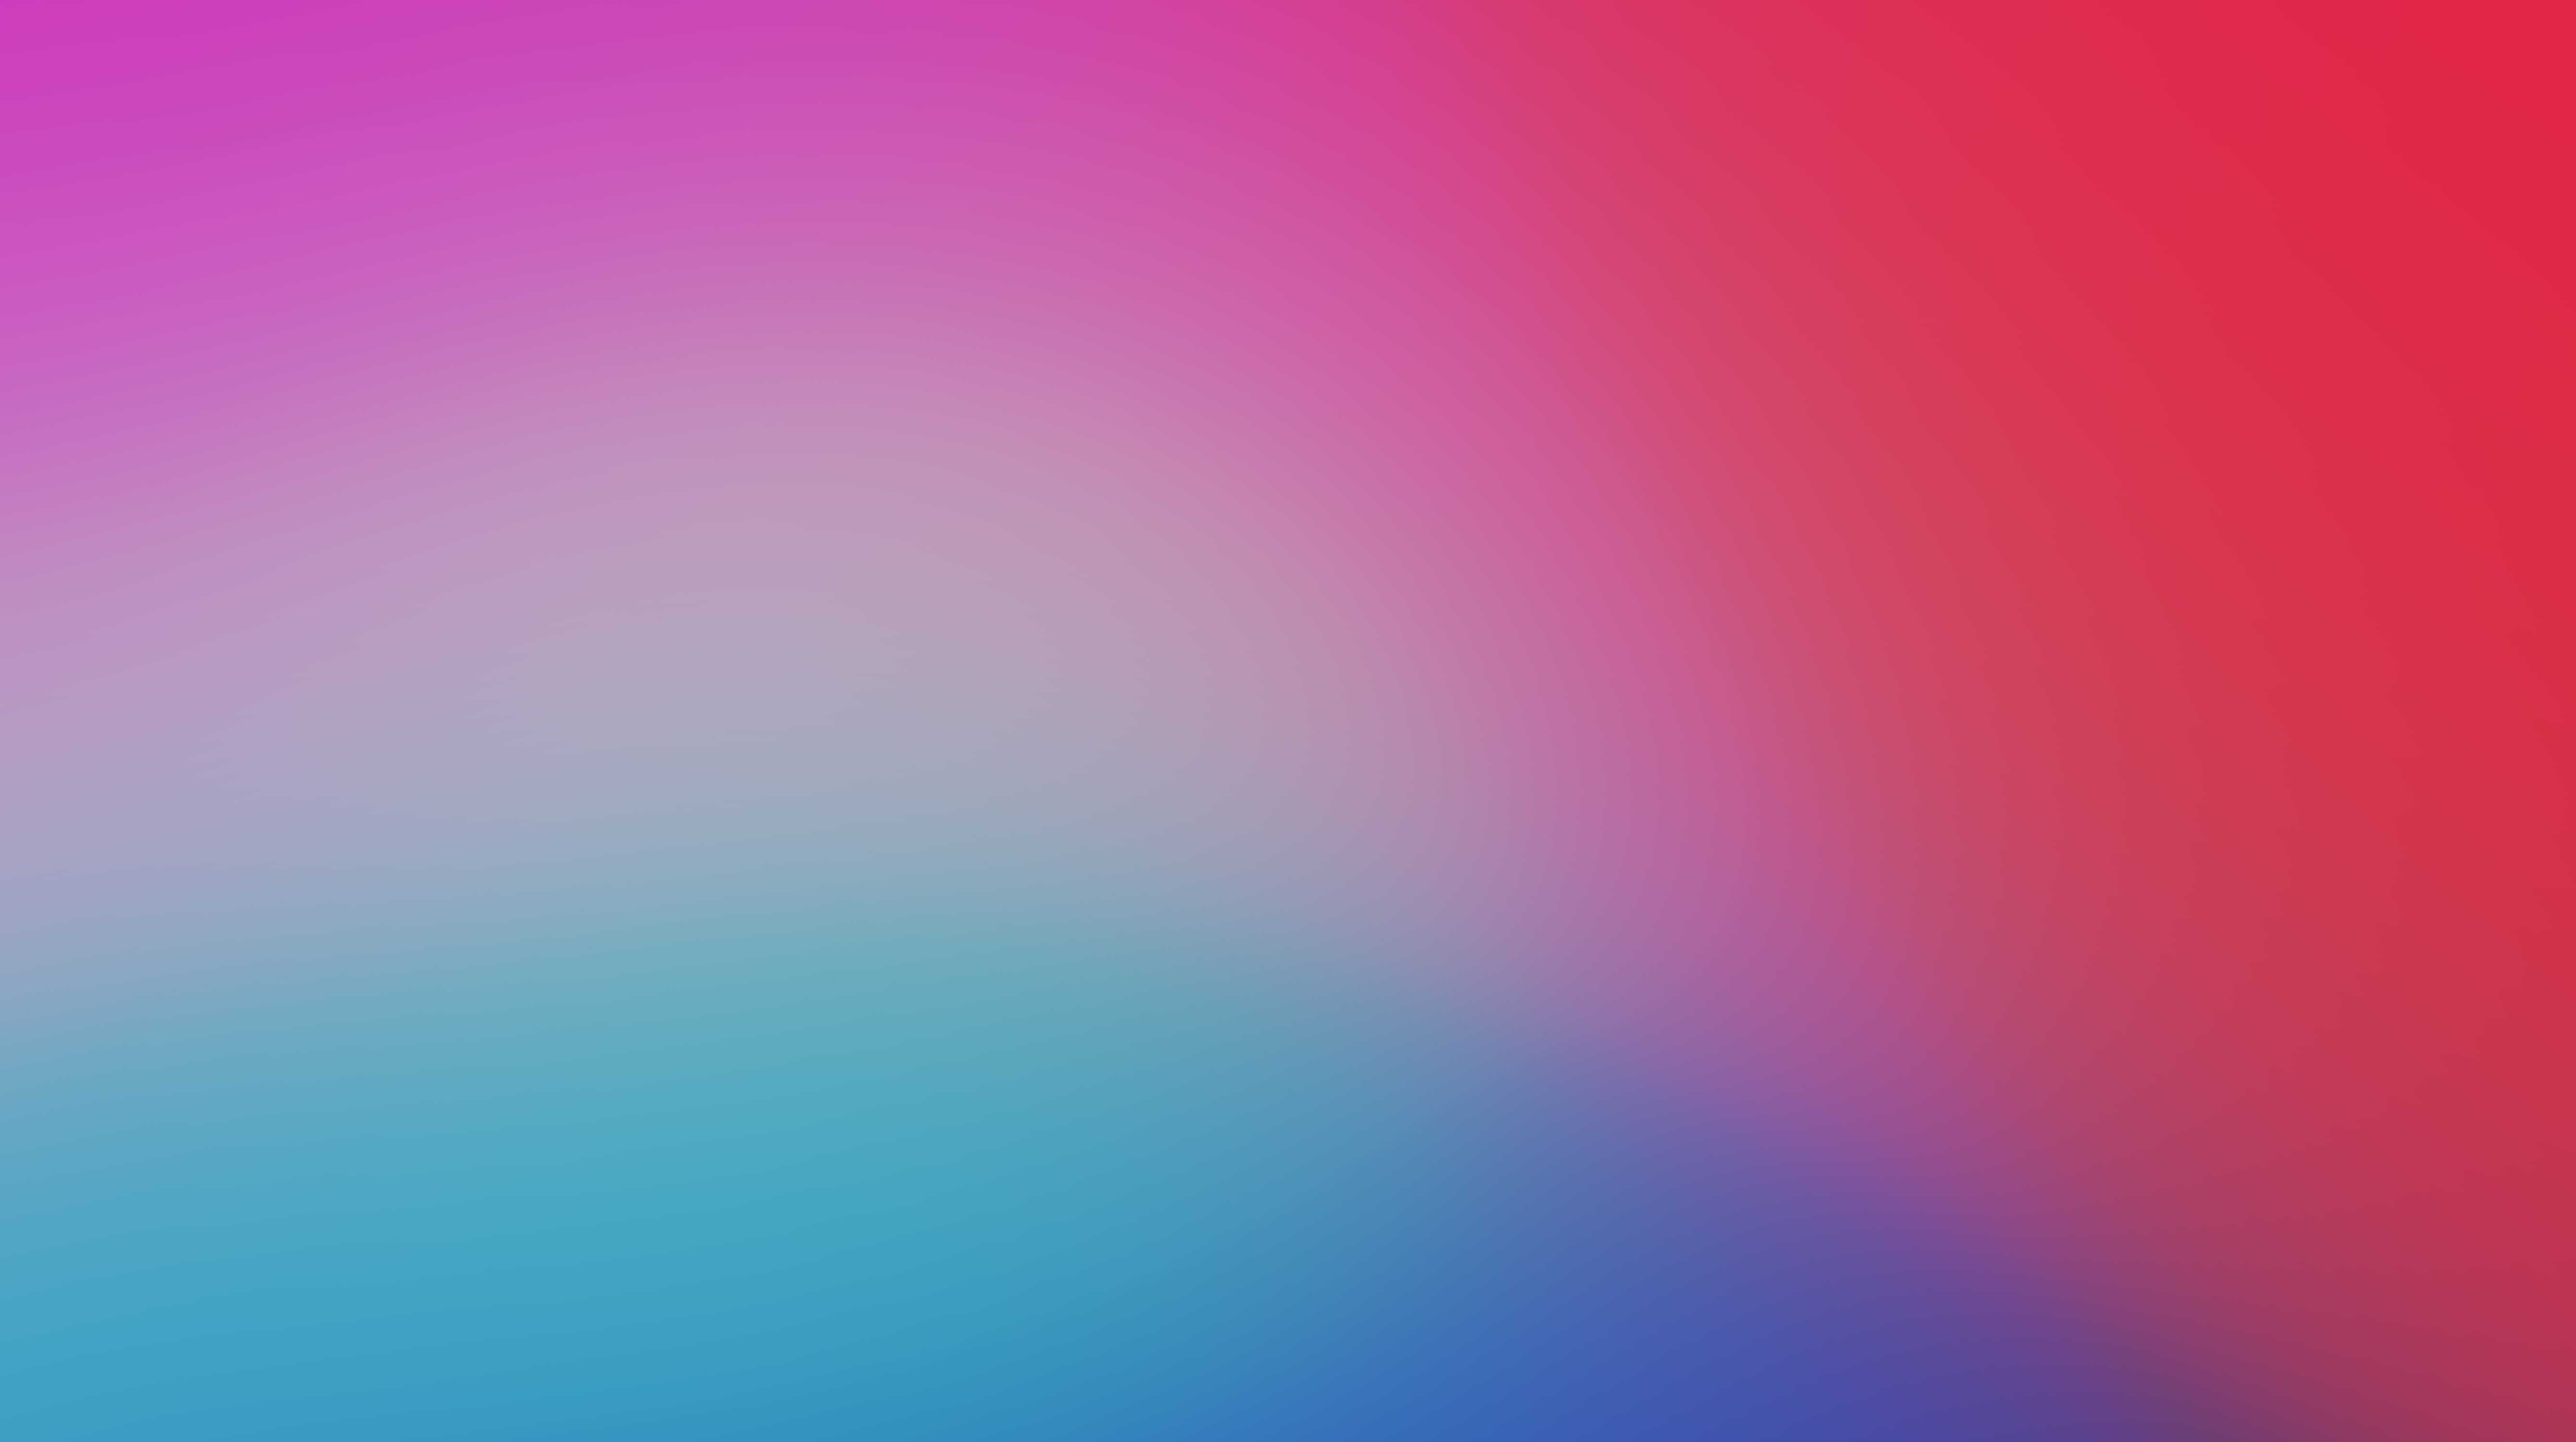 Colorful Vibrant Gradient Blur 5K 4K Vivid